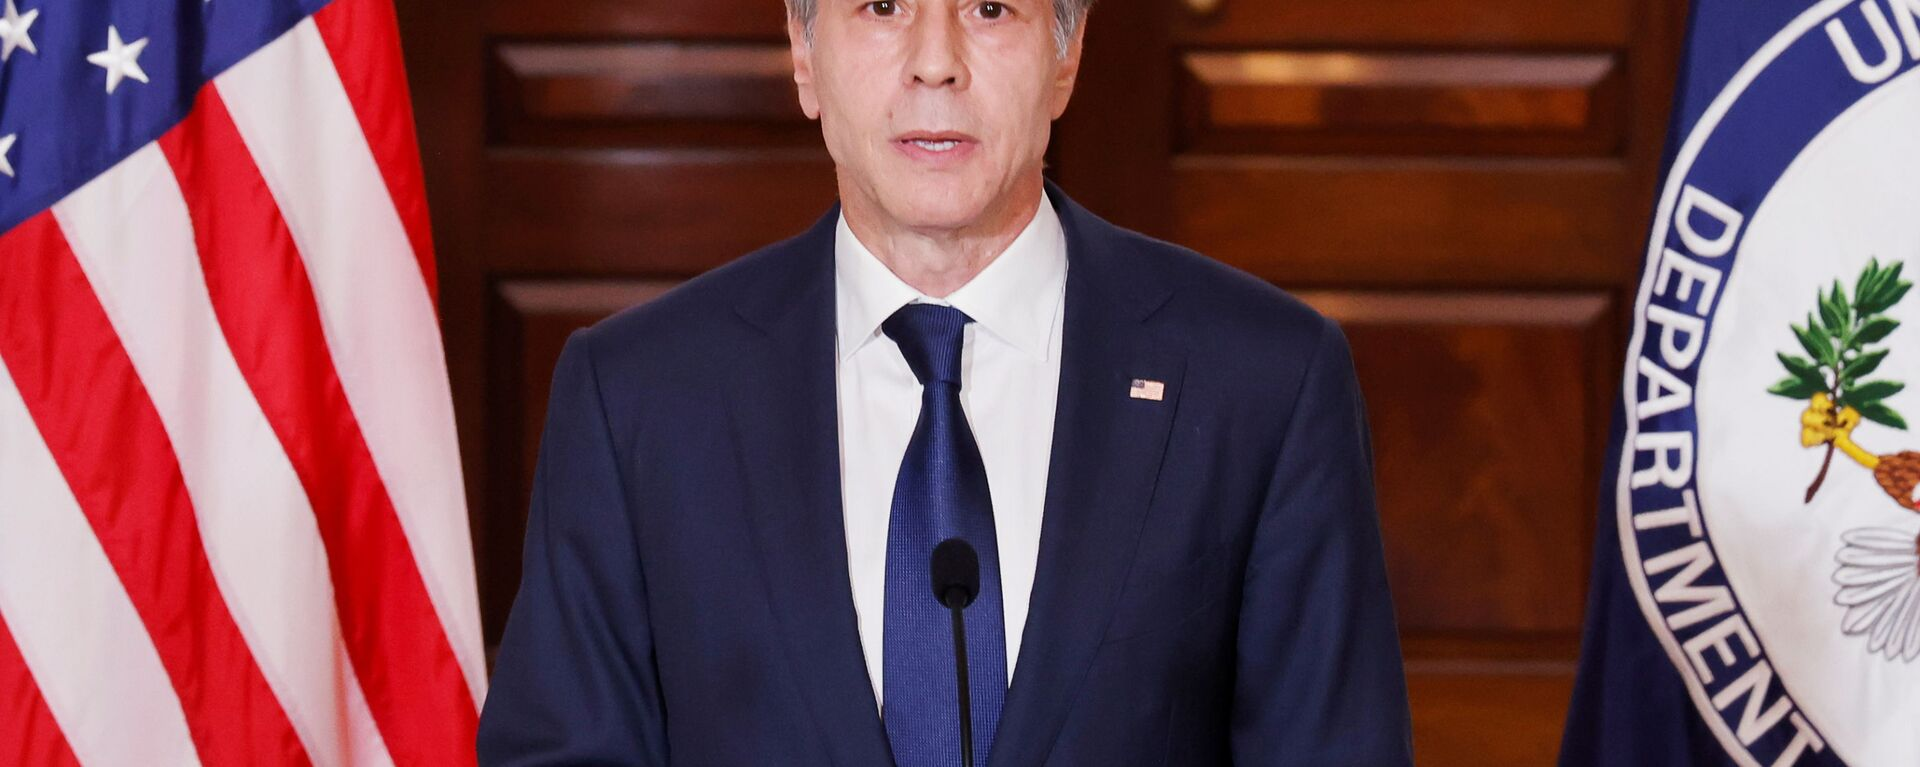 U.S. Secretary of State Antony Blinken delivers remarks following talks on the situation in Afghanistan, at the State Department in Washington, U.S., August 30, 2021 - Sputnik International, 1920, 14.09.2021